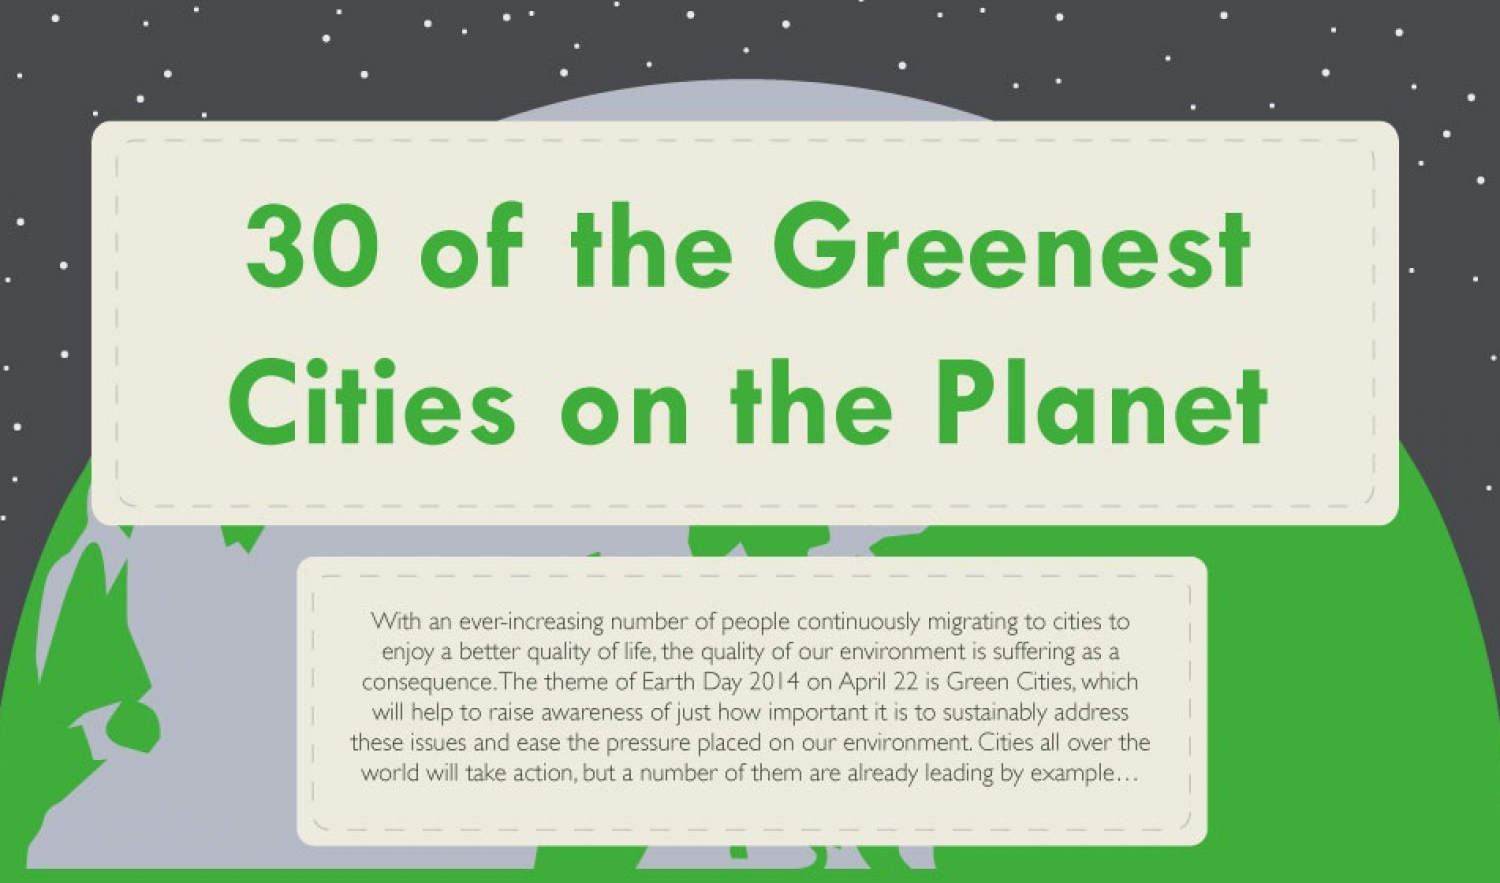 30 of the Greenest Cities on the Planet Infographic